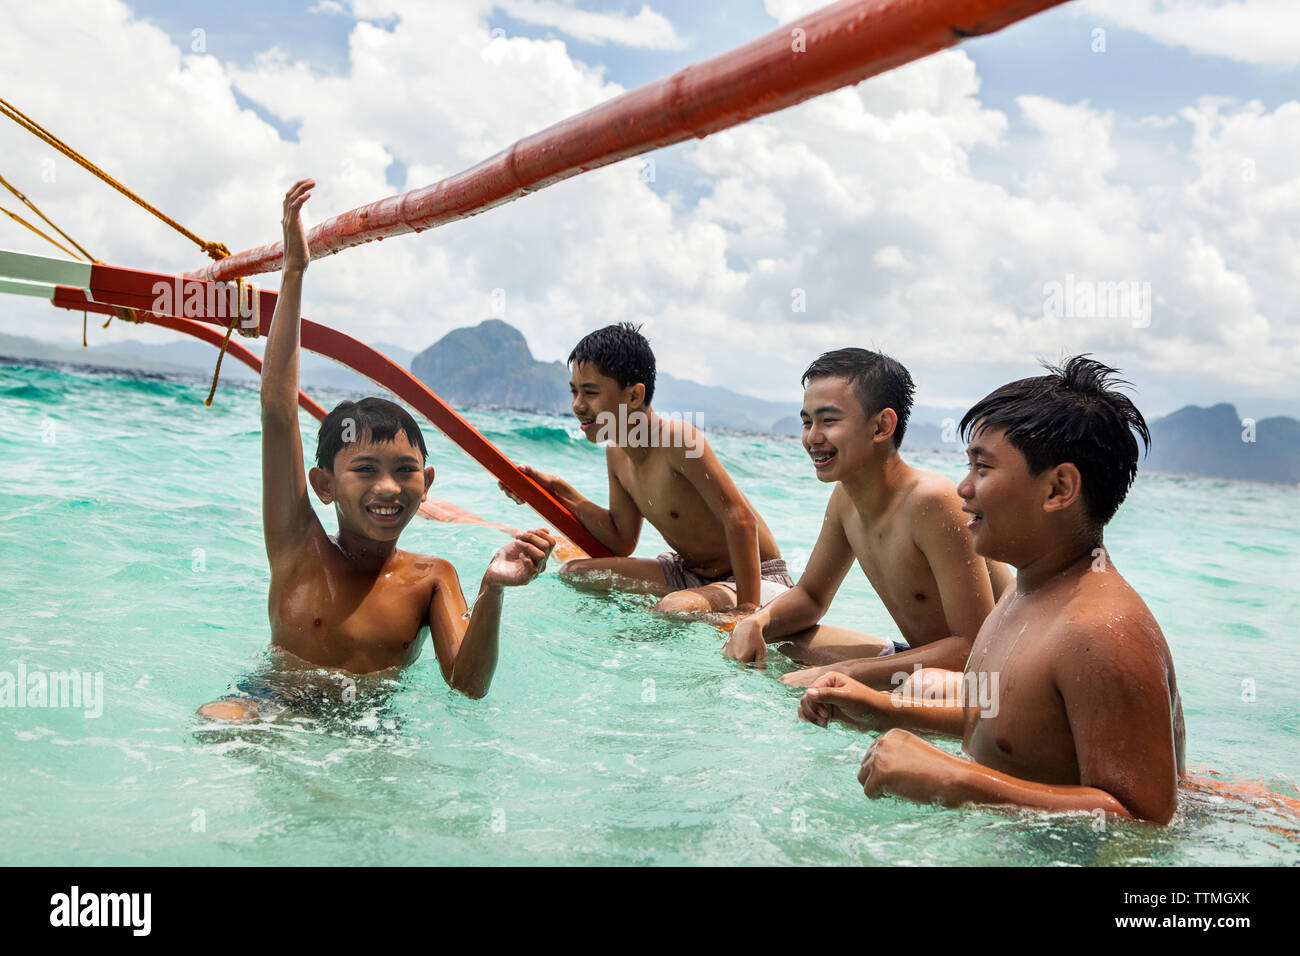 PHILIPPINES, Palawan, El Nido, Entalula Island, kids play in the clear water on Entalula Island, located in Bacuit Bay, the South China Sea - Stock Image